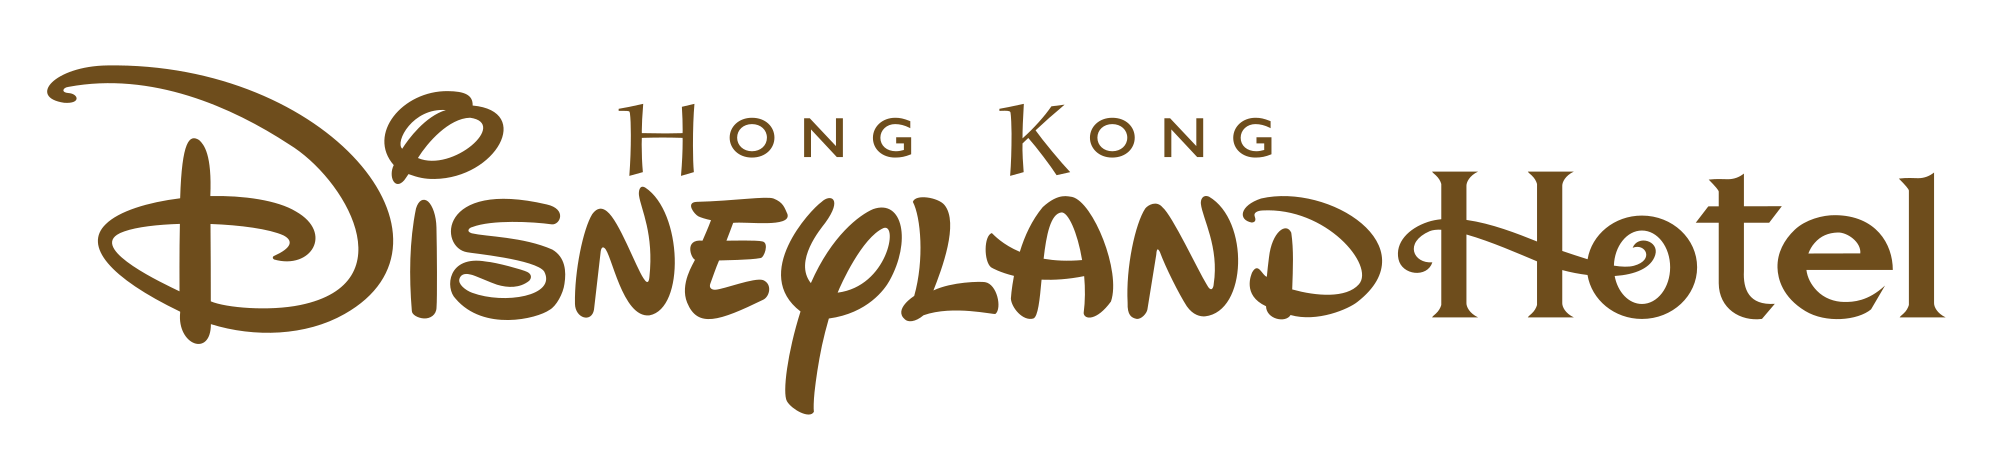 Hong Kong Disneyland Hotel Disney Wiki Fandom Powered